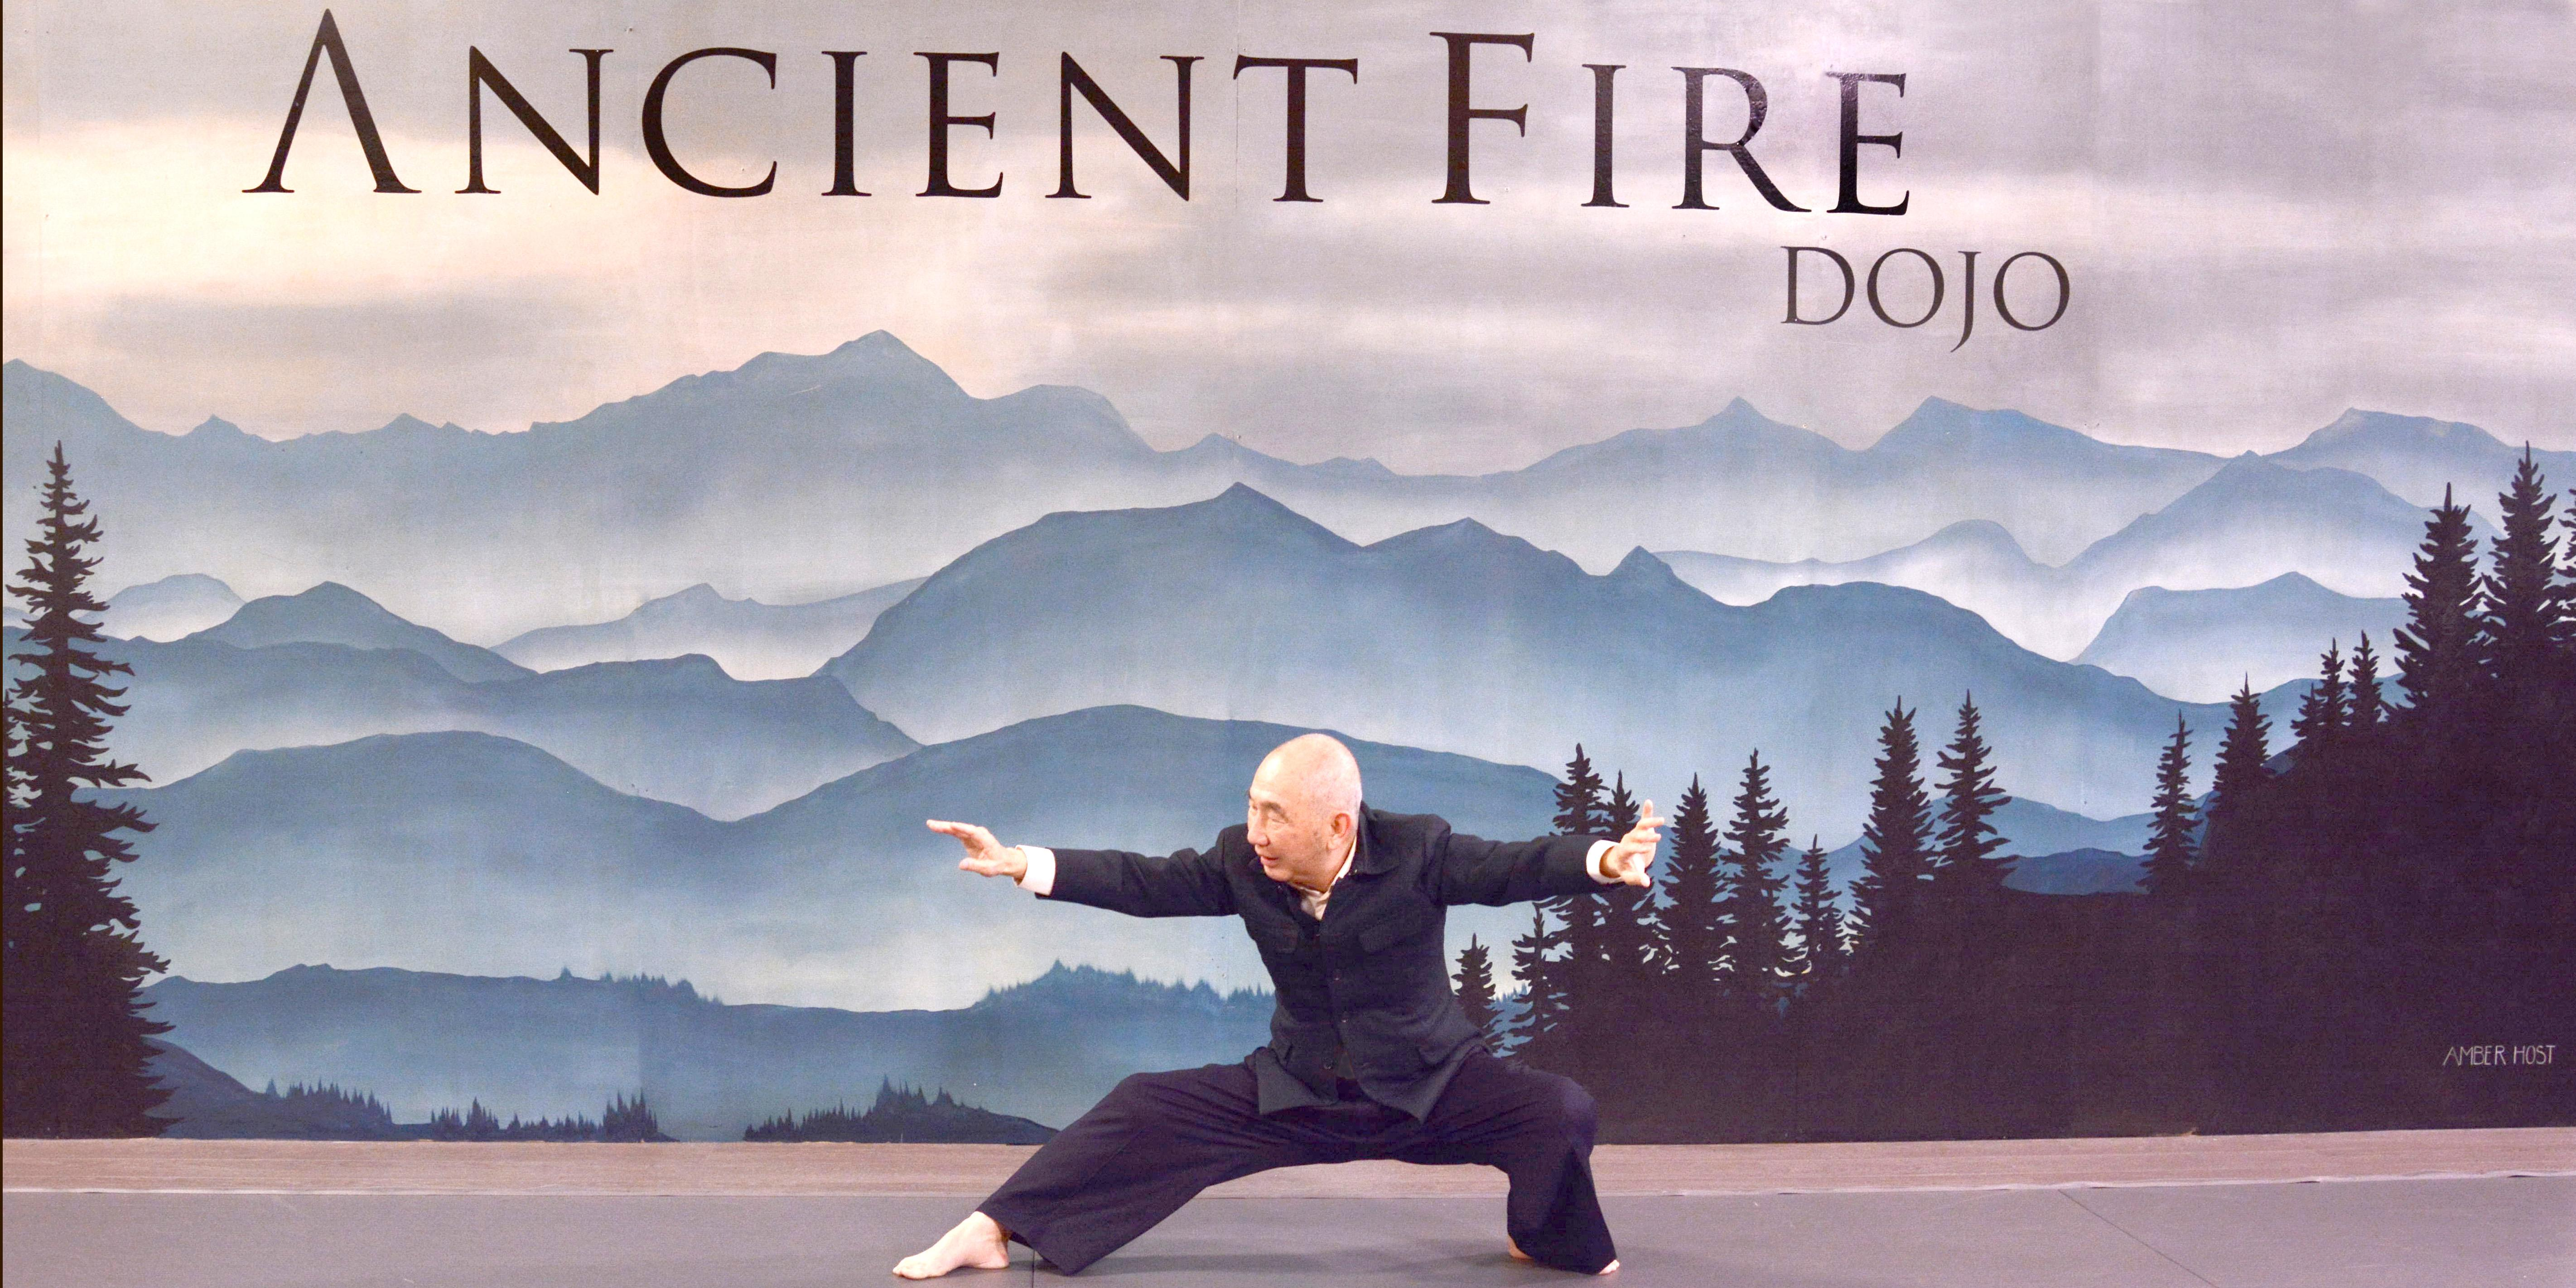 Free Tai Chi introduction and meditation with Master Tek at Ancient Fire